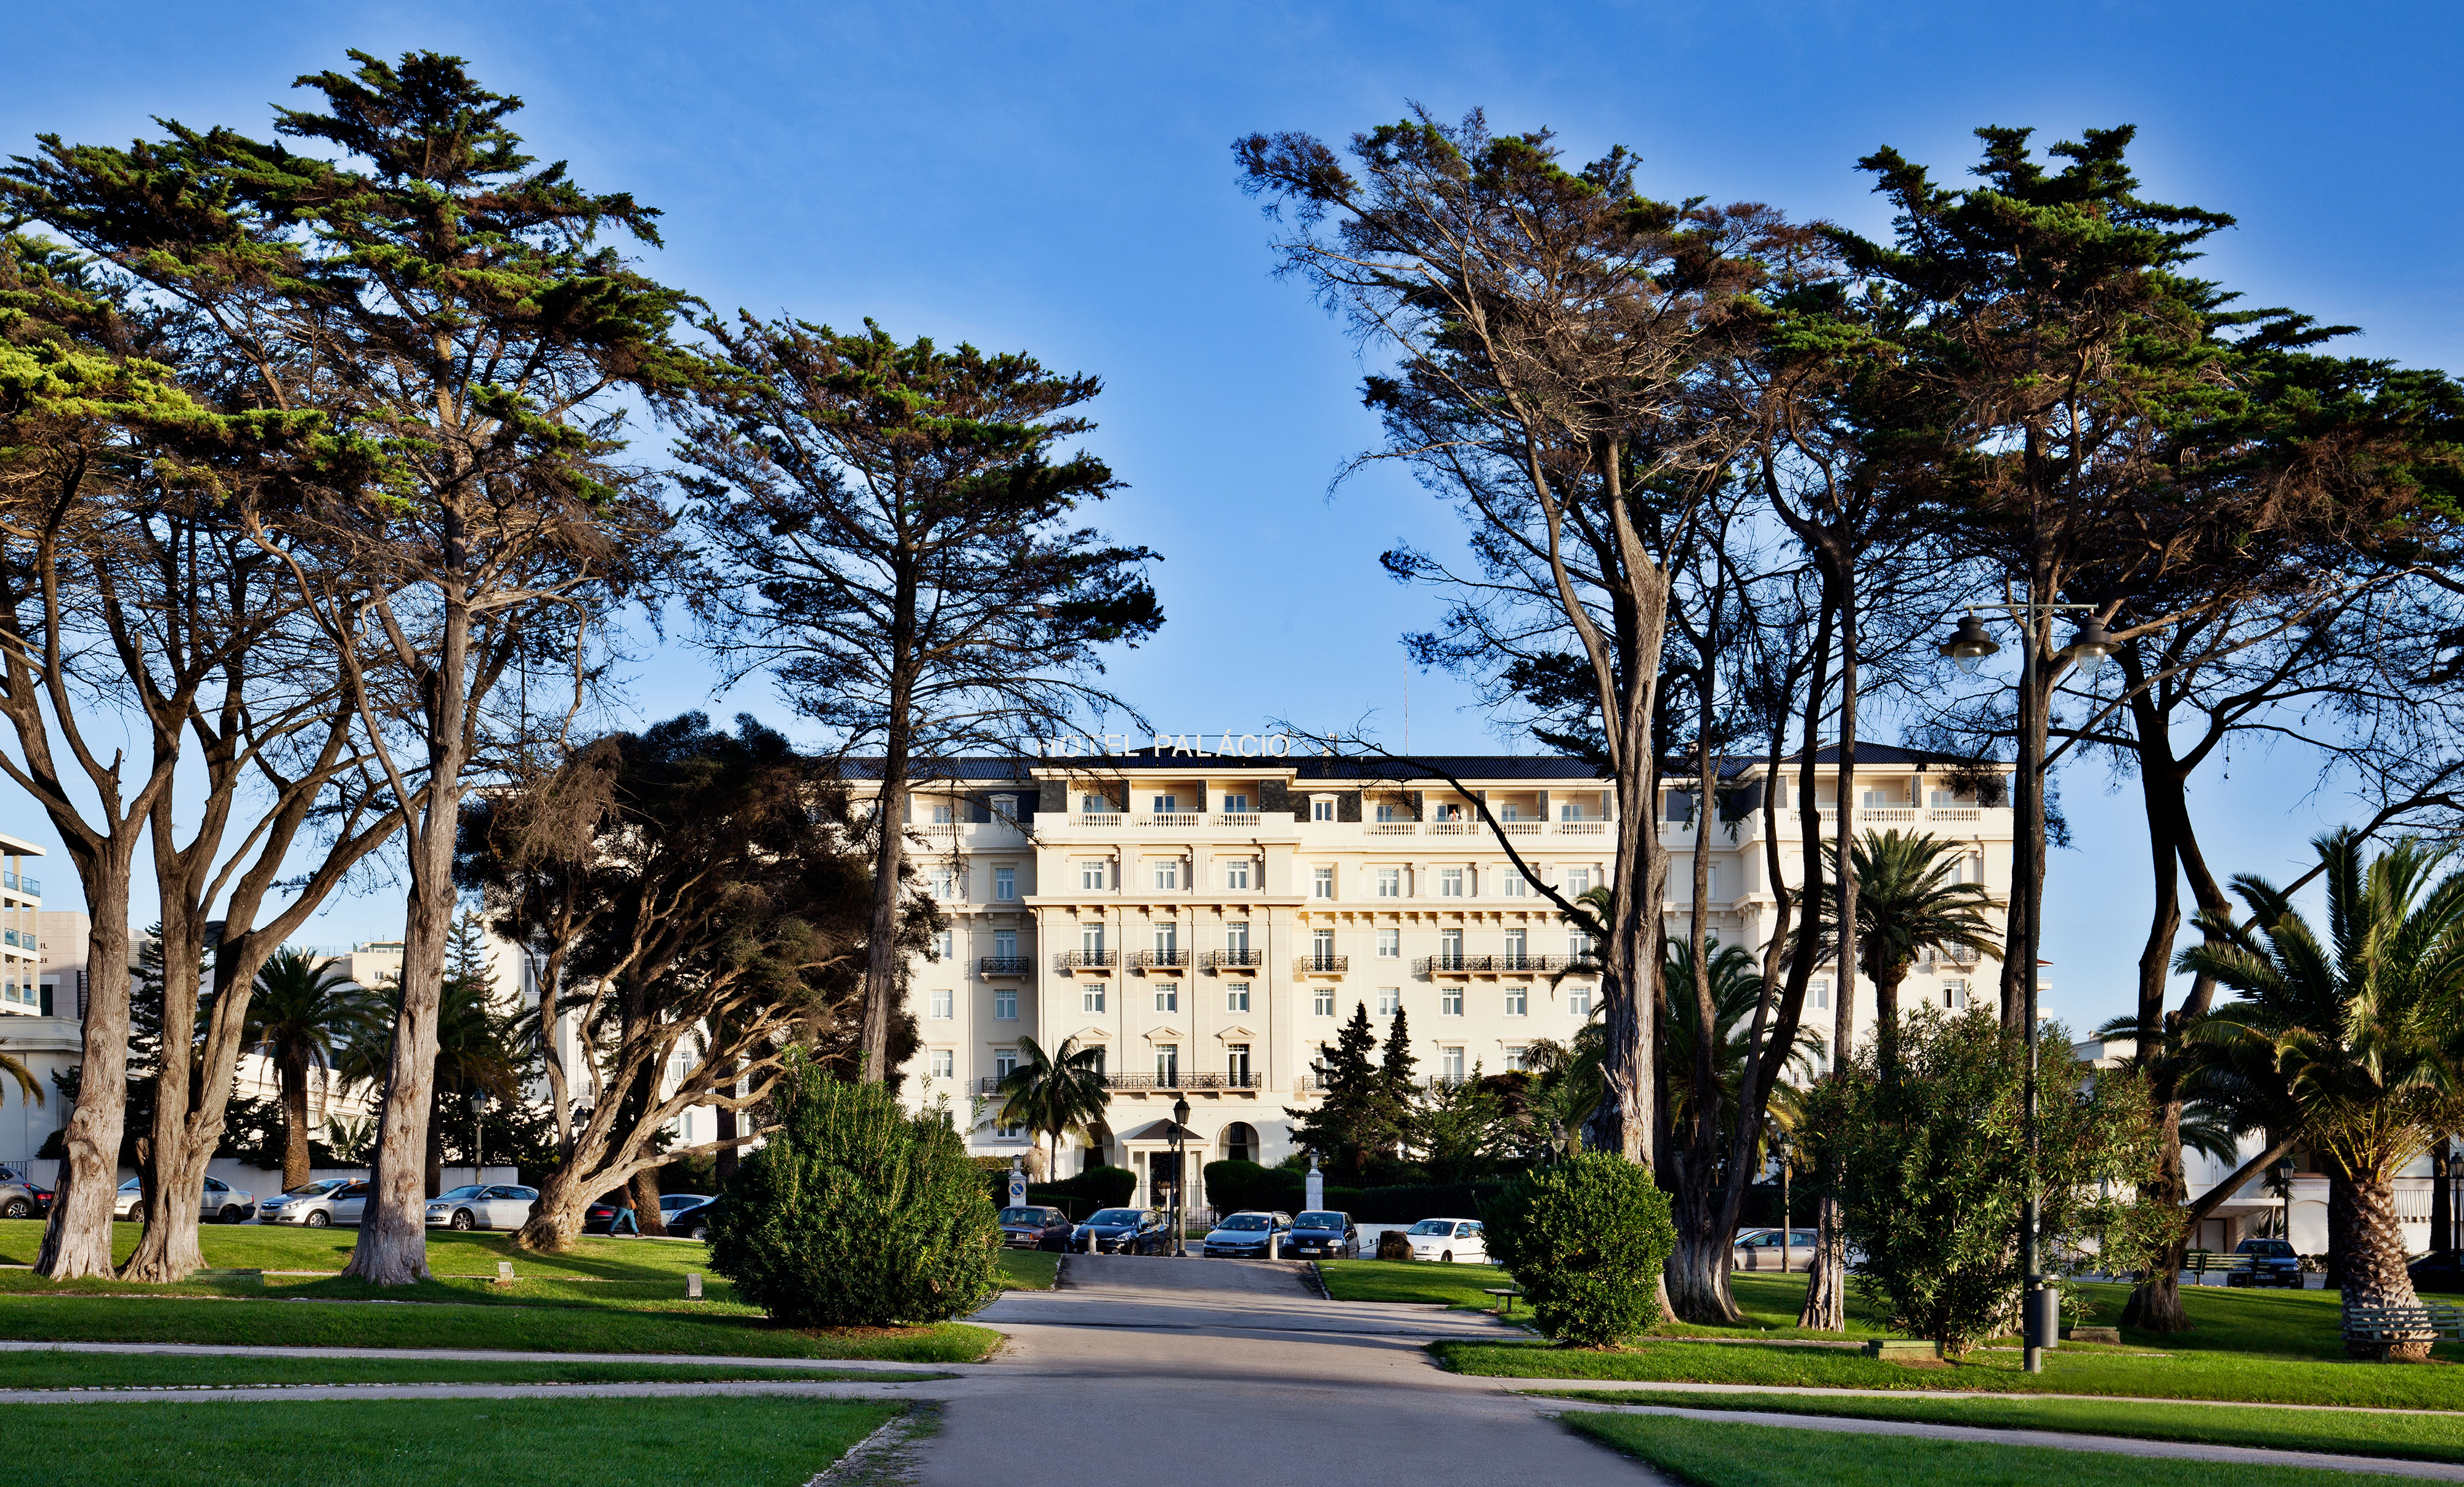 Palacio Estoril Hotel Golf & Spa, Cascais